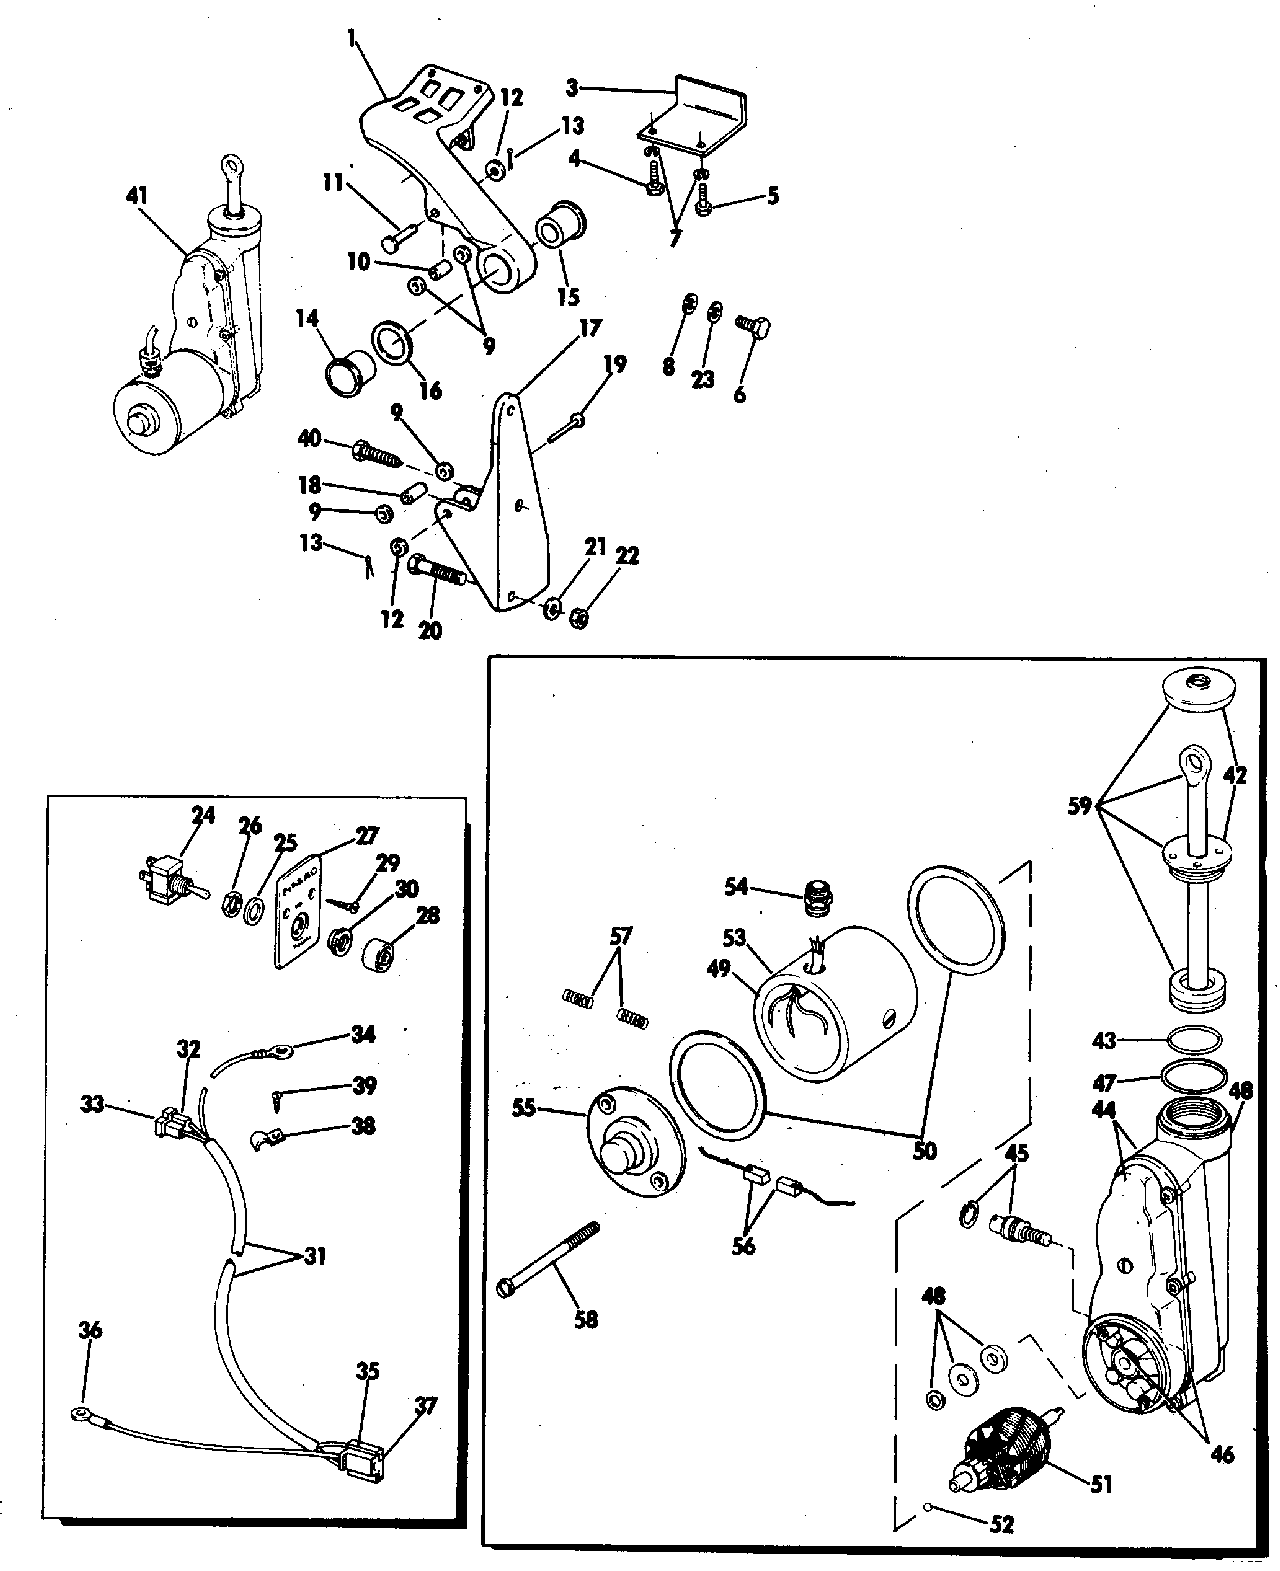 [WRG-6653] 65 Hp Evinrude Wiring Diagram